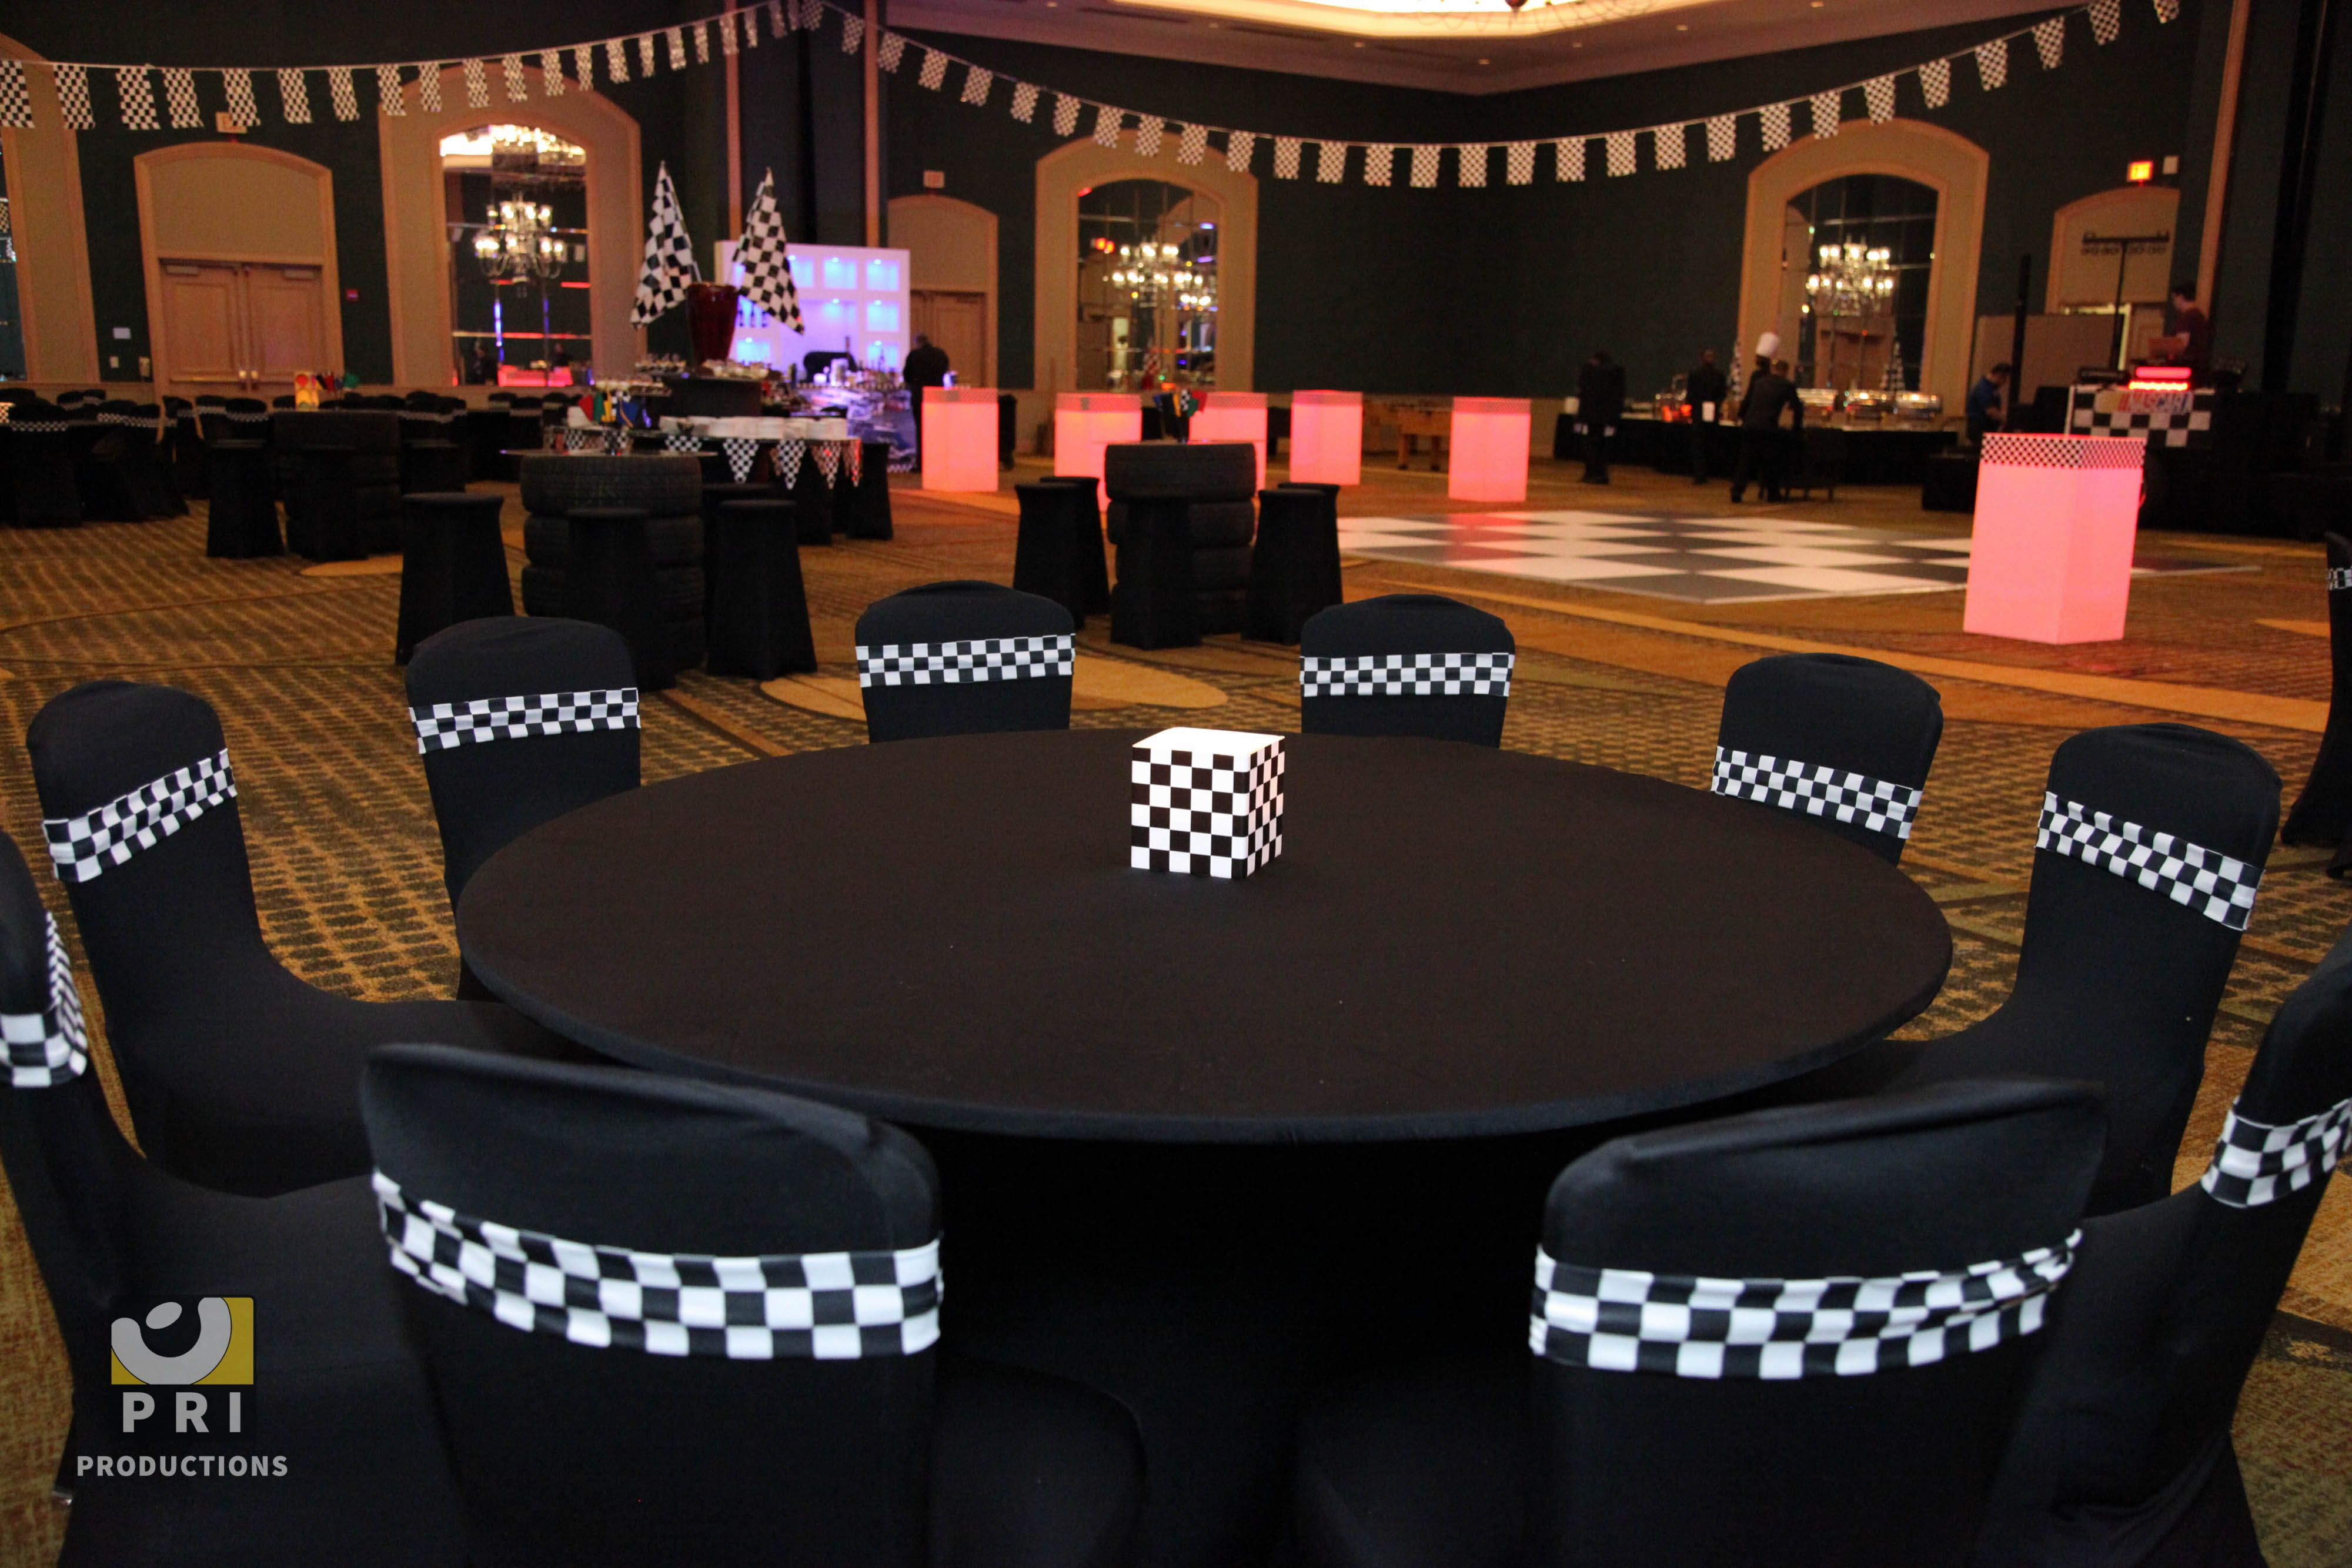 Racing Themed Decor Black Spandex Chair Covers And Checkered Spandex Chair Bands Car Themed Parties Race Car Birthday Decorations Race Car Party